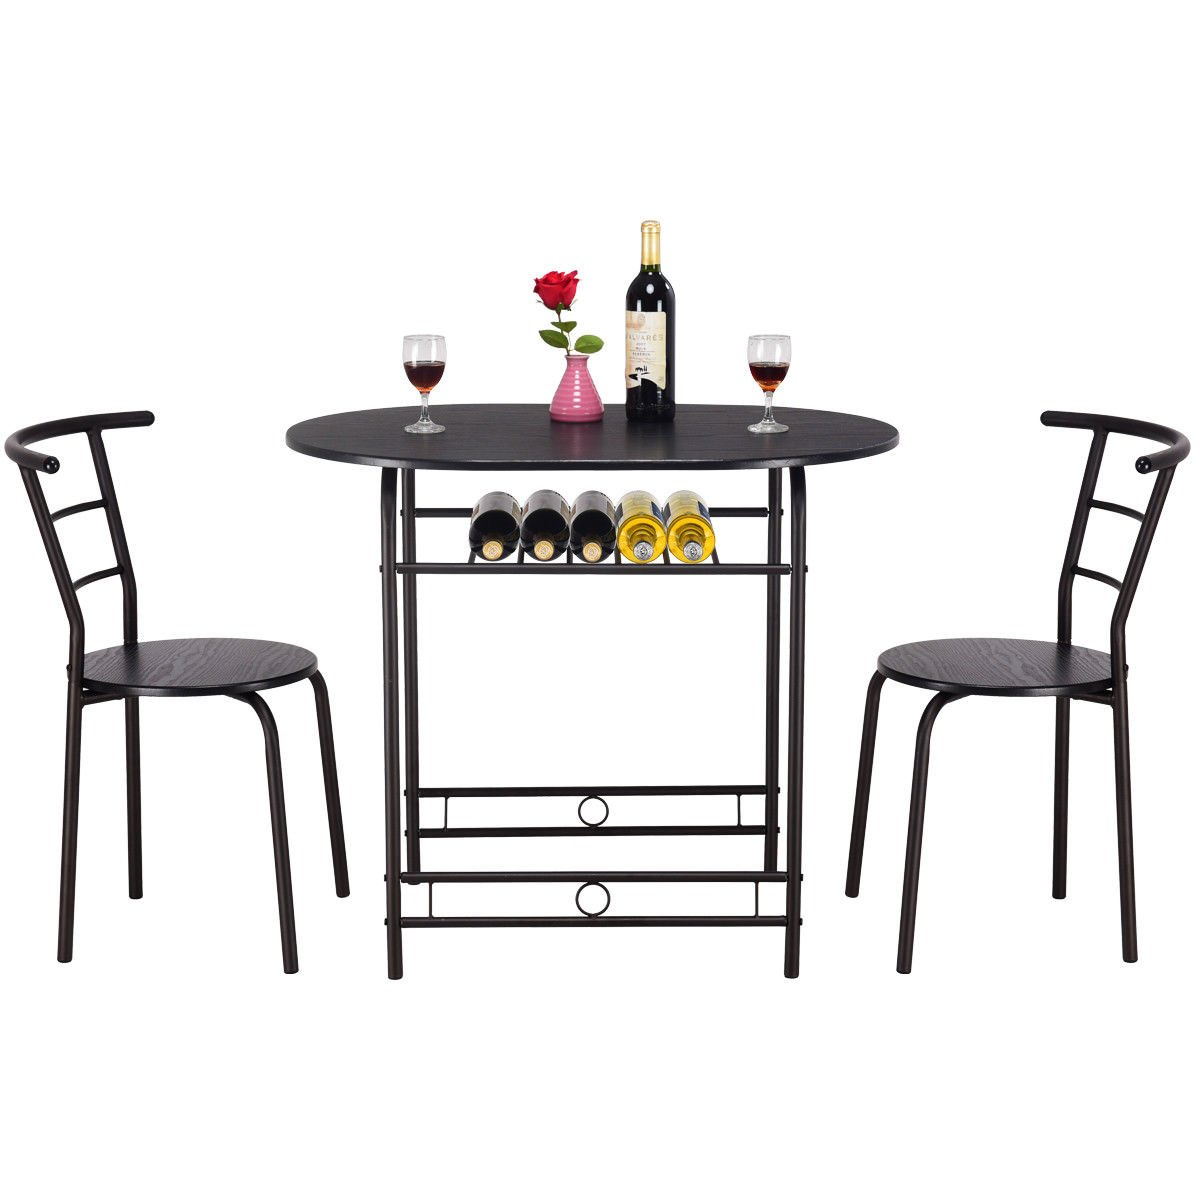 Giantex 3 PCS Dining Table Set w/1 Table and 2 Chairs Home Restaurant Breakfast Bistro Pub Kitchen Dining Room Furniture (Black) by Giantex (Image #7)